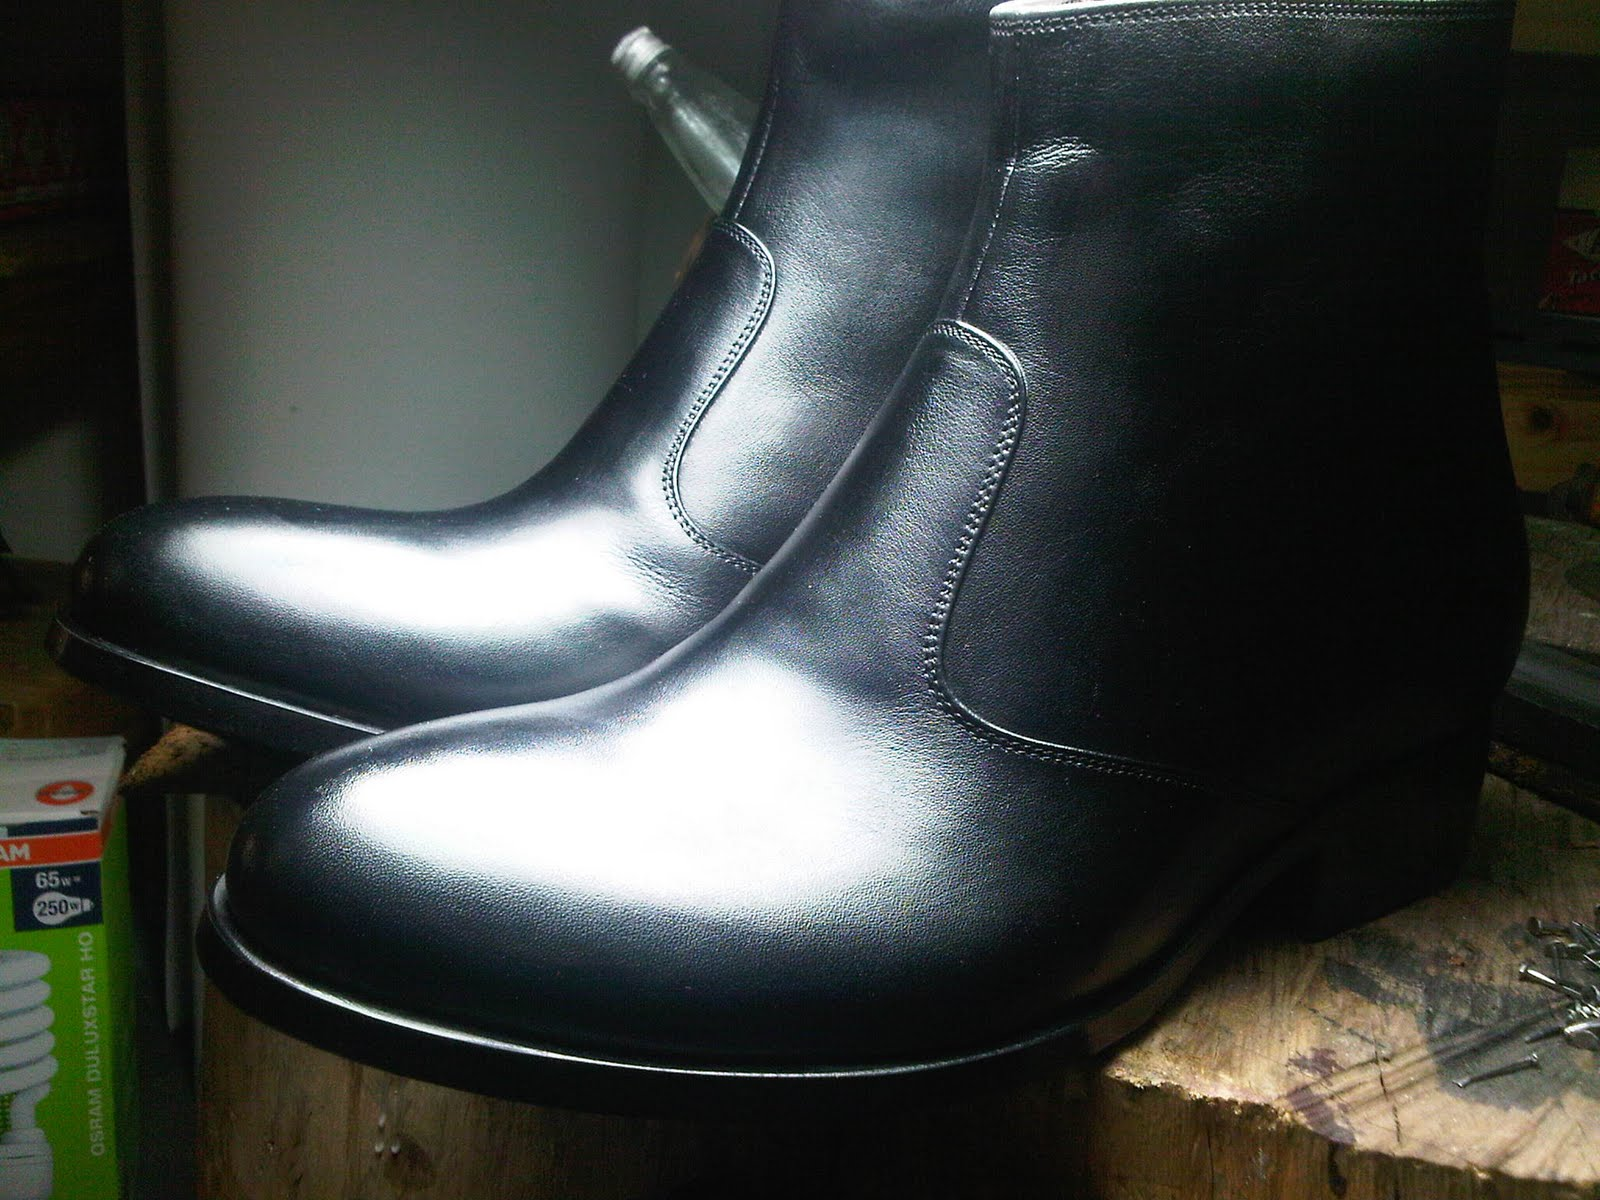 Appeli Elevator Boots From Dons Shoes